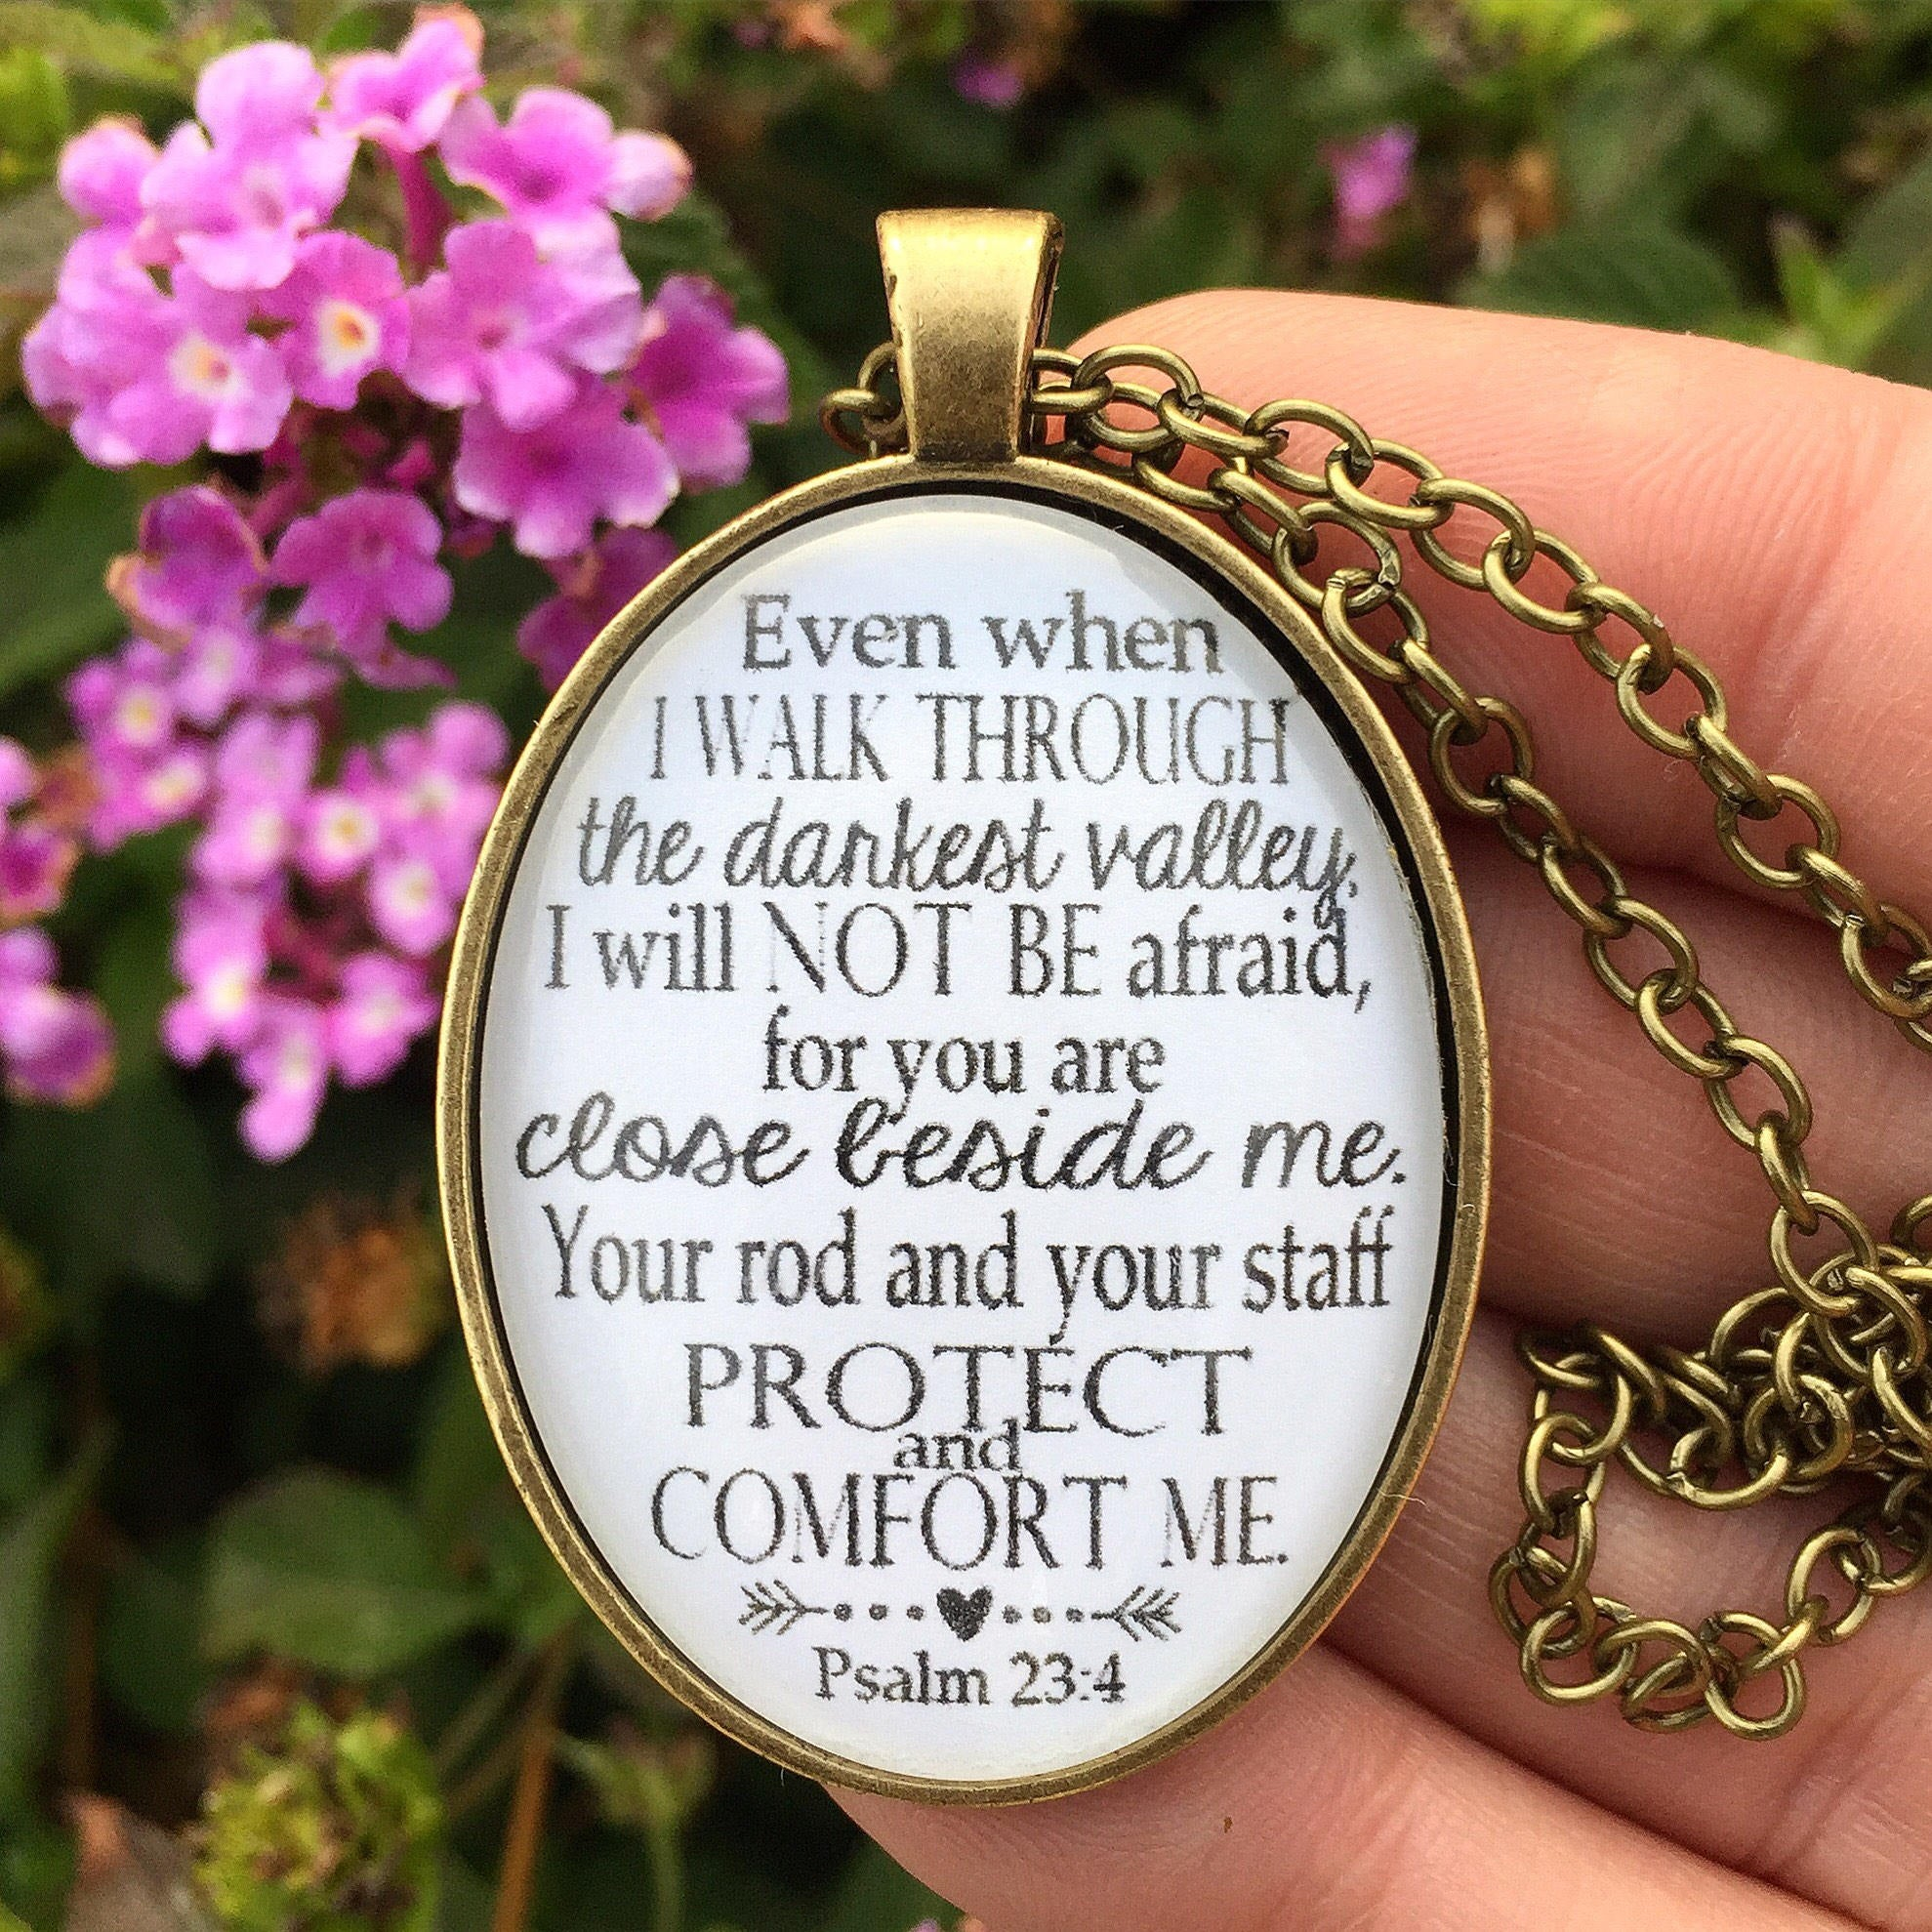 Psalm 23:4 Bible Verse Pendant Necklace - Redeemed Jewelry